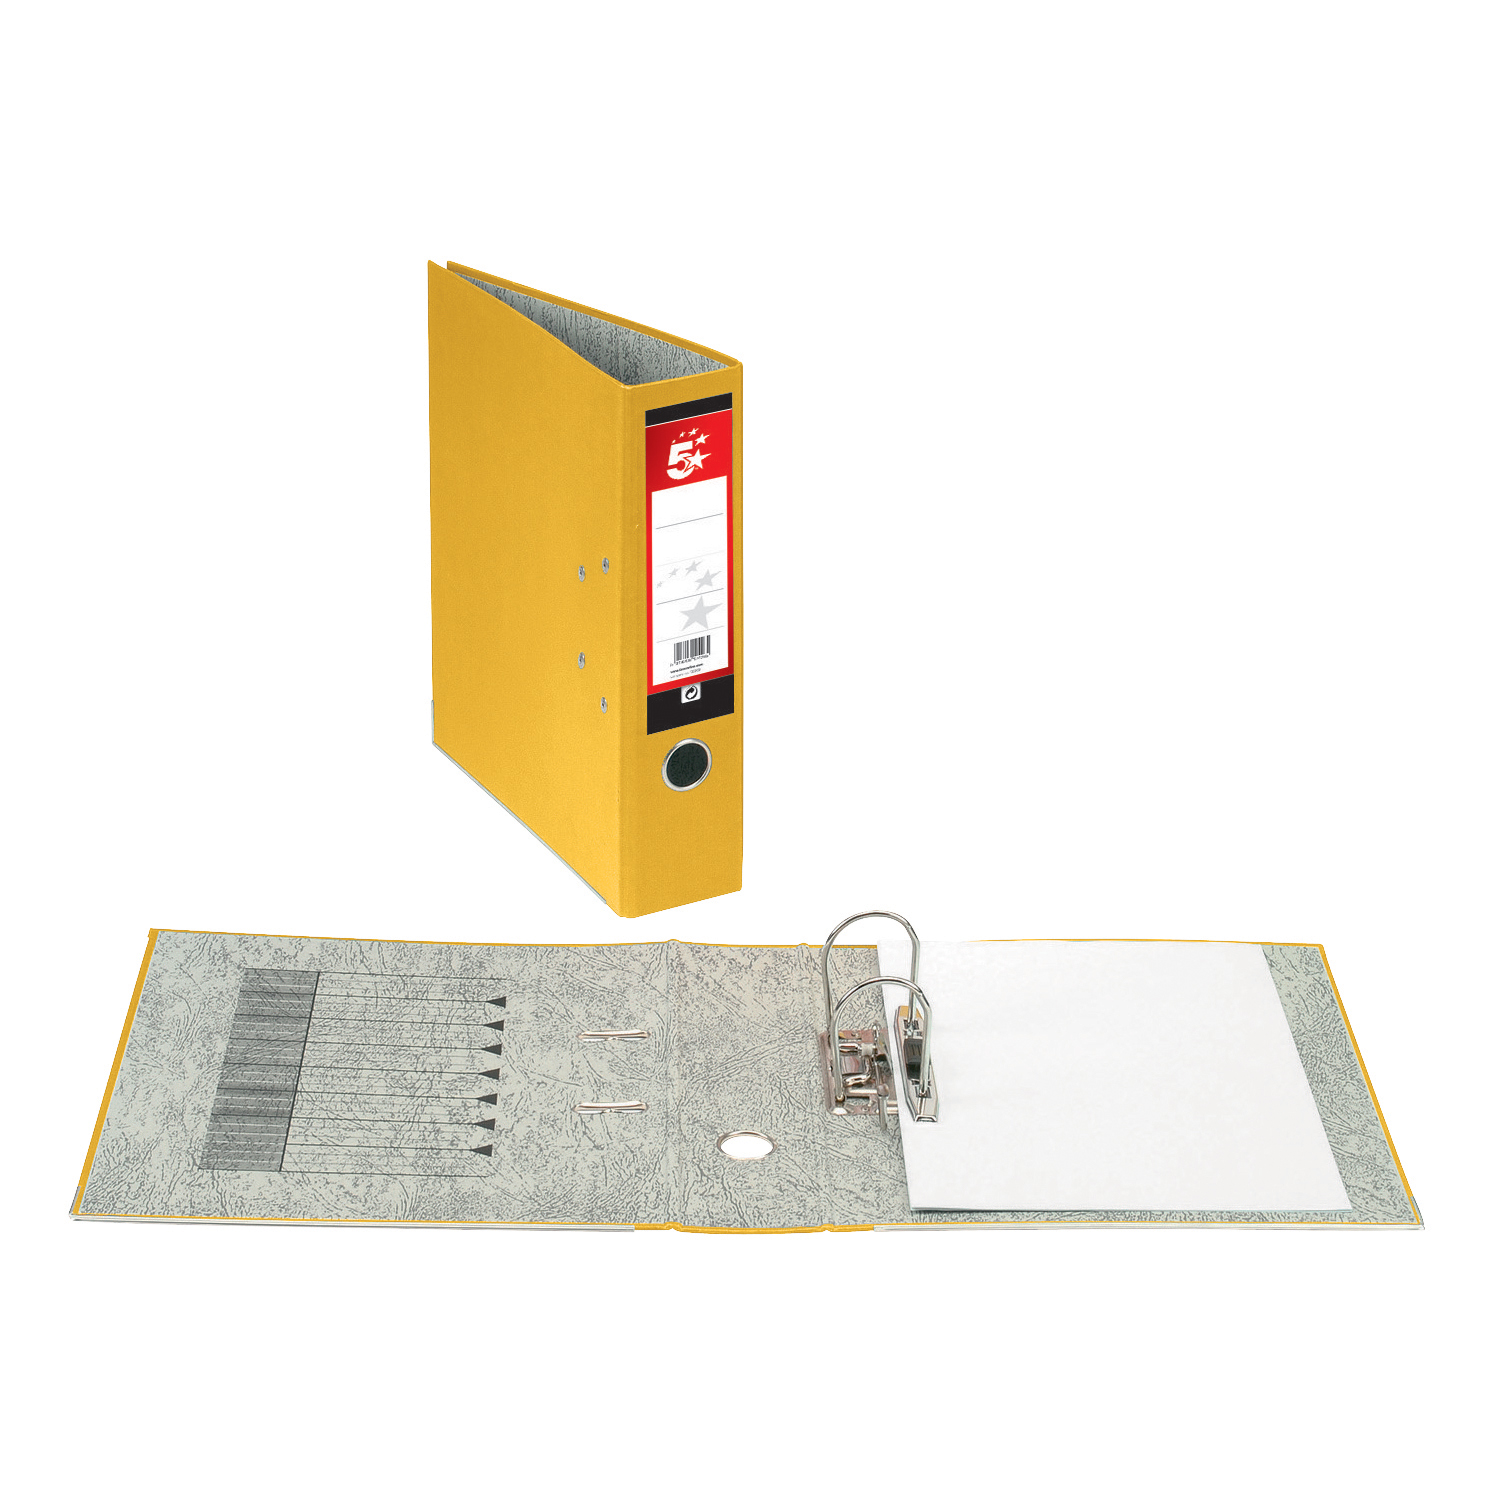 5 Star Office Lever Arch File 70mm Foolscap Yellow